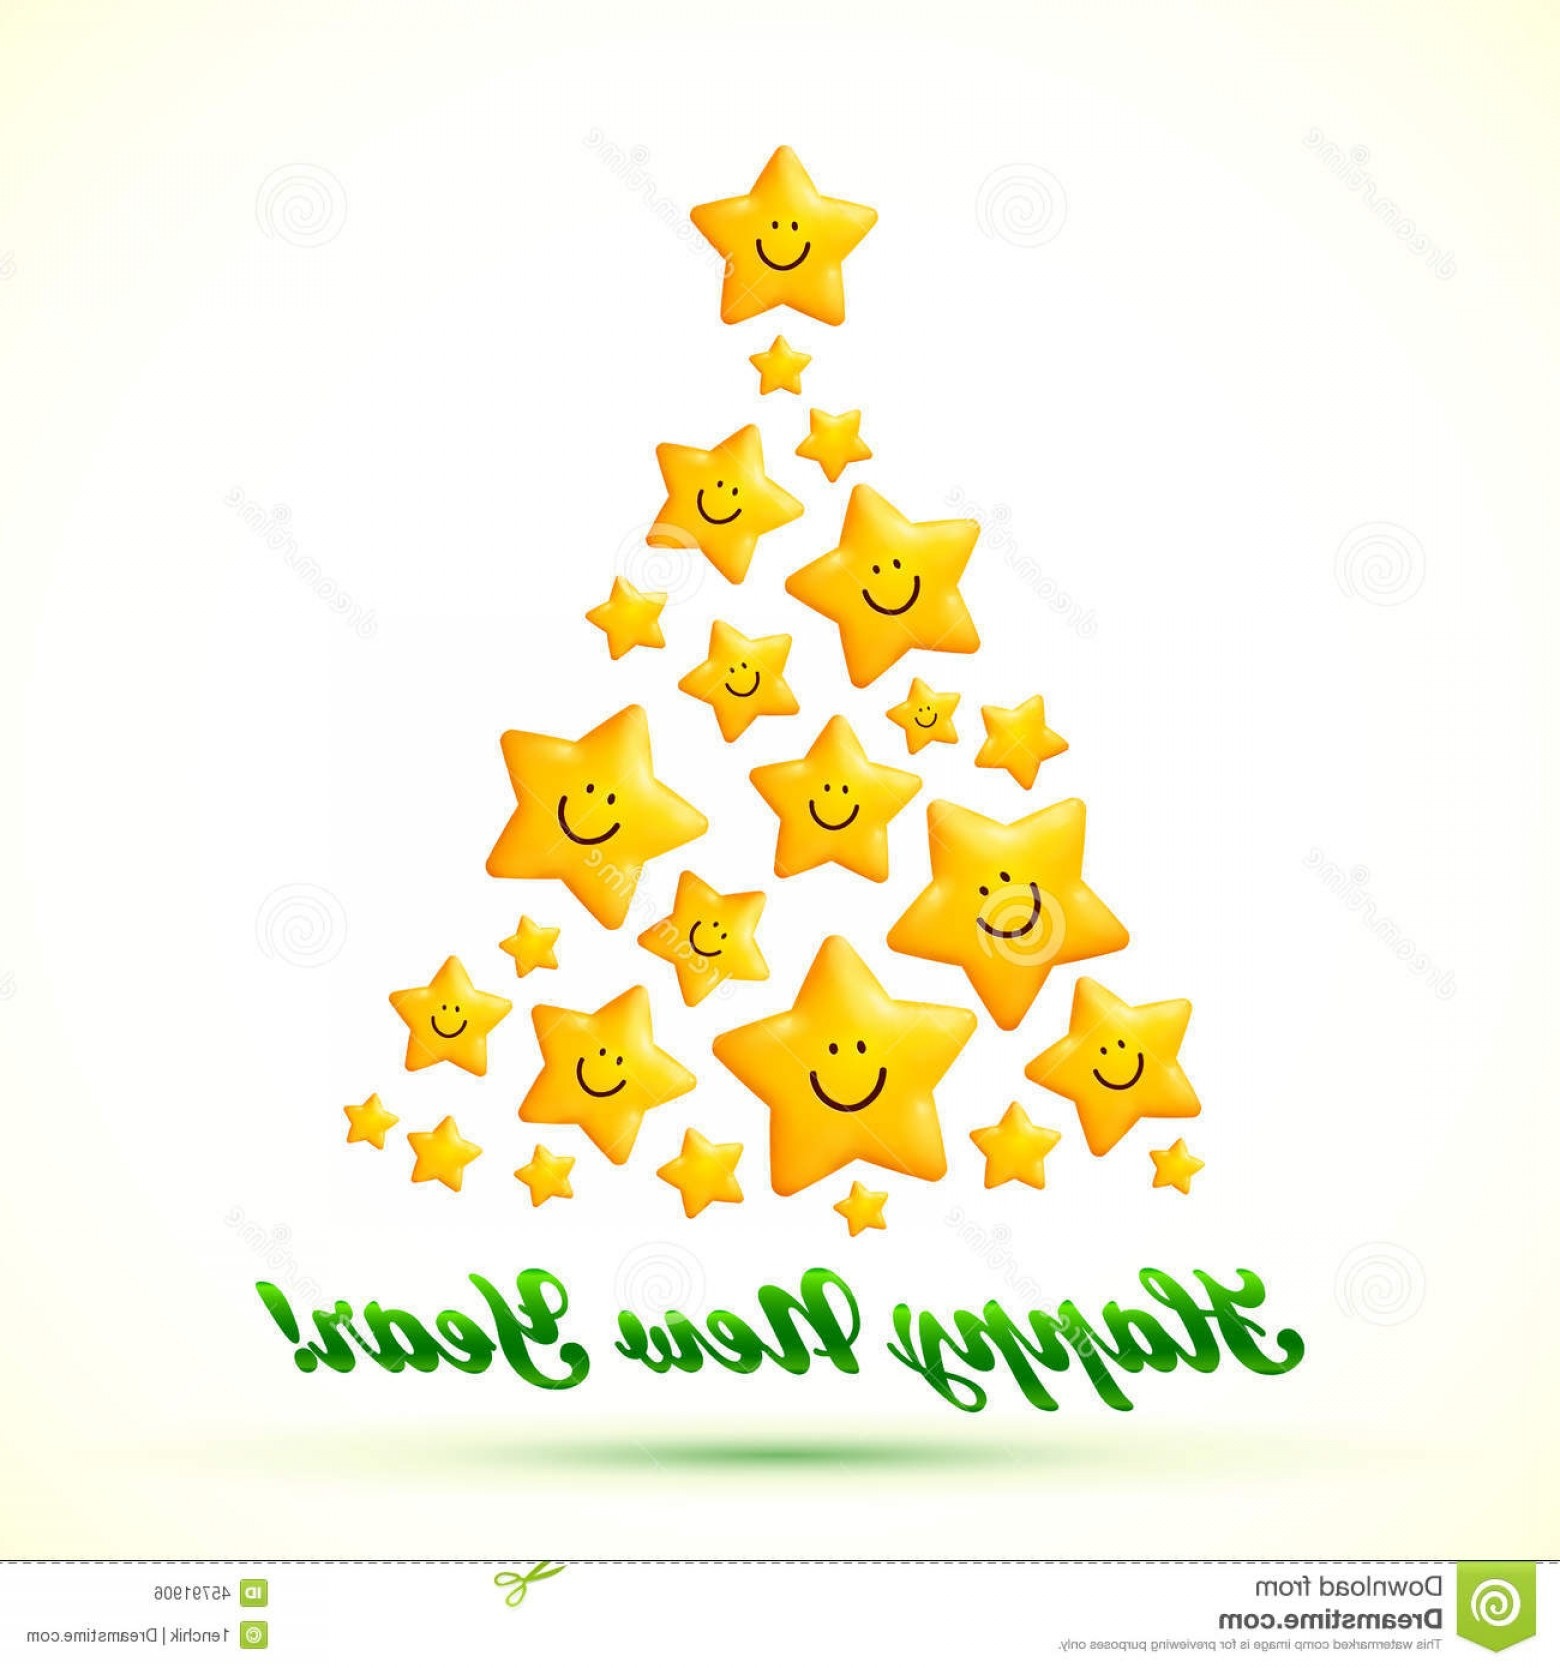 Stars Yellow Christmas Vector: Stock Illustration Christmas Tree Made Smiling Yellow Stars Vector Image